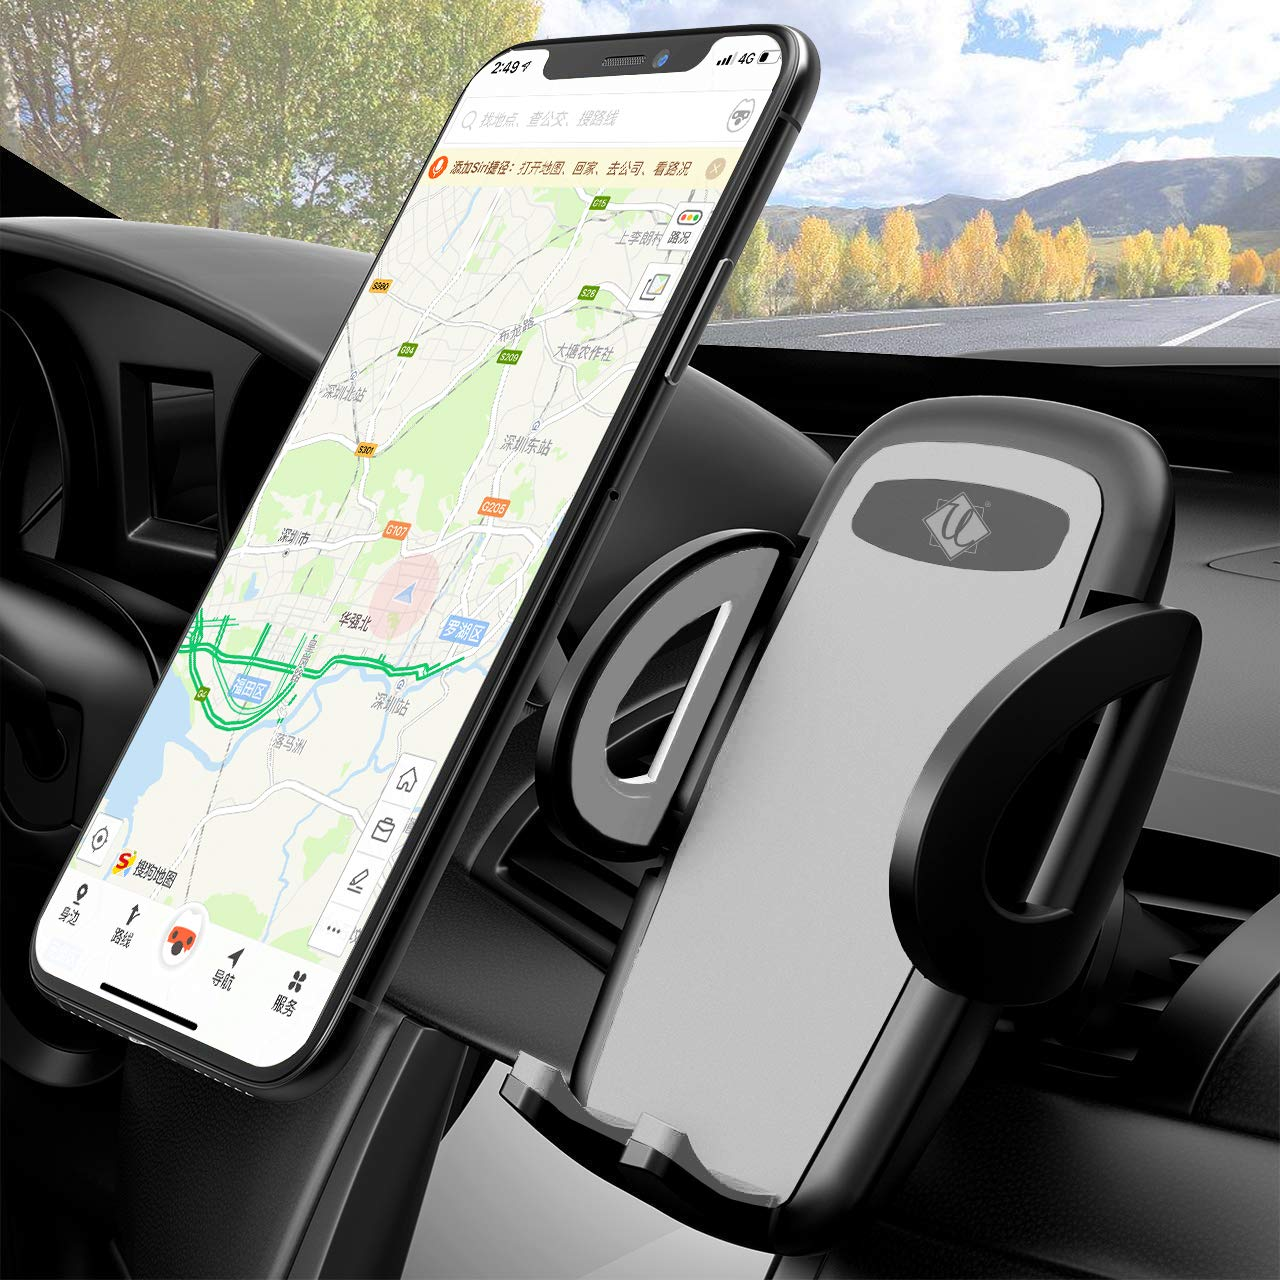 Phone Holder for Car Dollars Holder for Cell Phone in Vehicle Galaxy Note 10//S10//S8// Car Phone Mount 360/° Rotation Phone Car Mount Air Vent Phone Holder Compatible iPhone 11//XS MAX//XR//X//8//